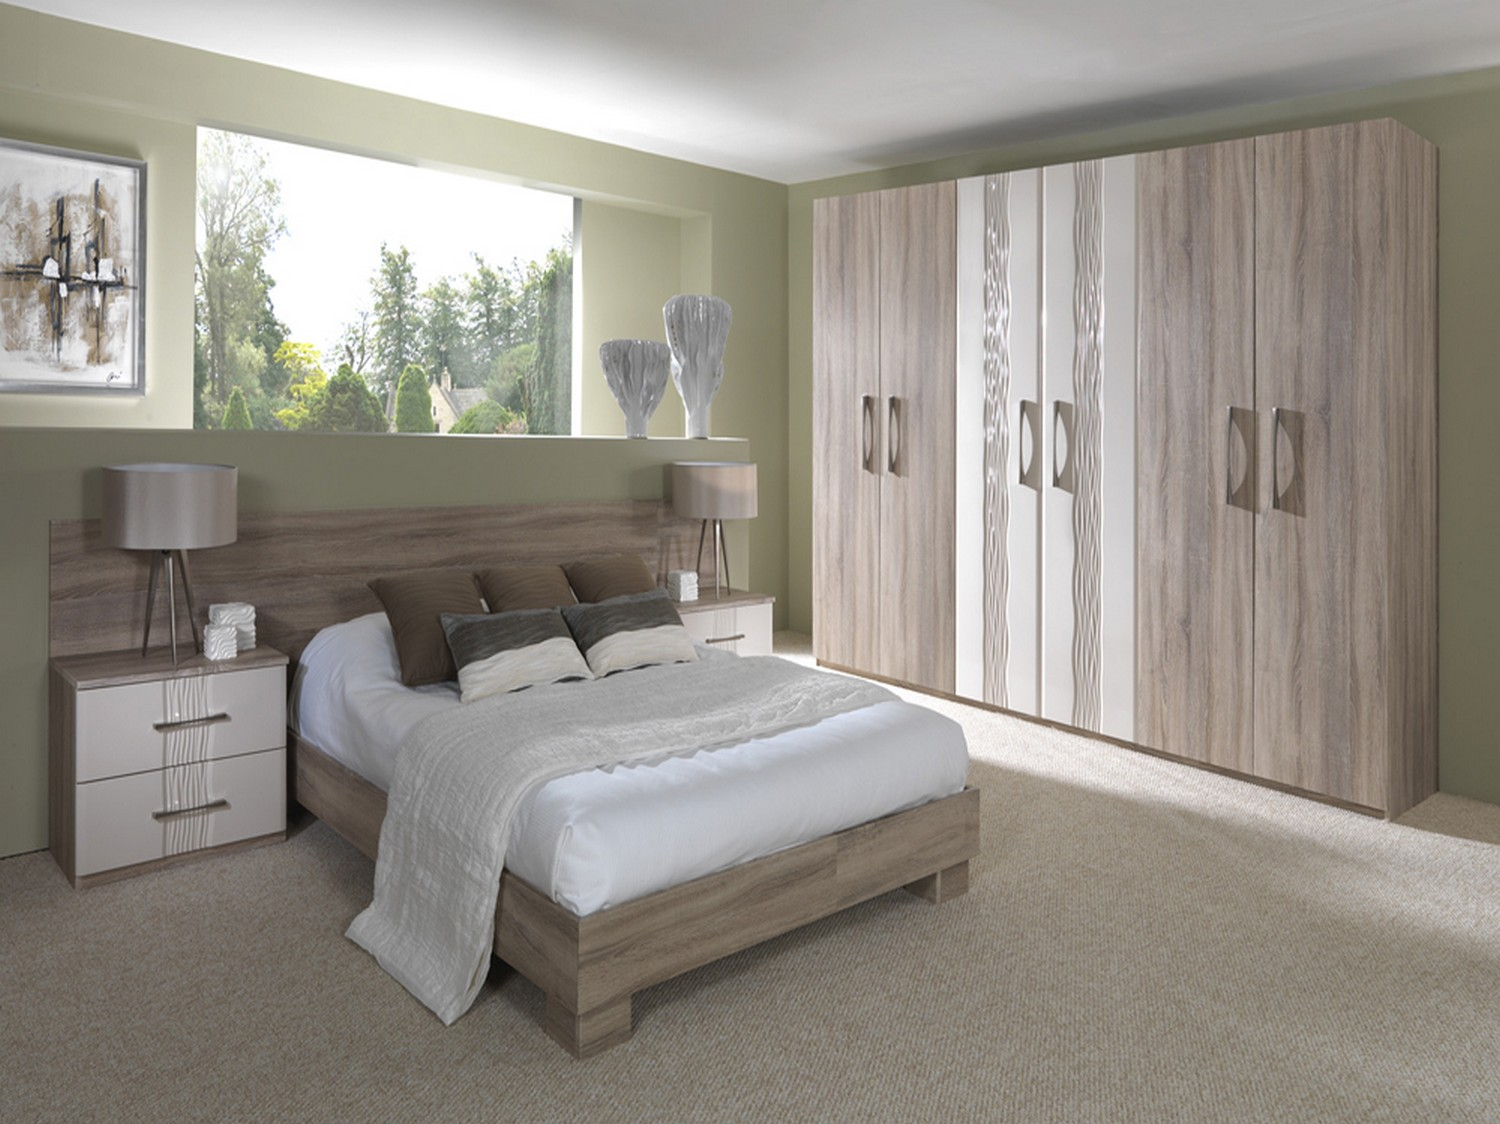 Oak and gloss cream bedroom furniture designed as a complete bedroom furniture solution including bed, headboard, wardrobe and bed sides tables. The gloss cream doors feature an inset pattern combined with a simple chrome handle for a contemporary look.